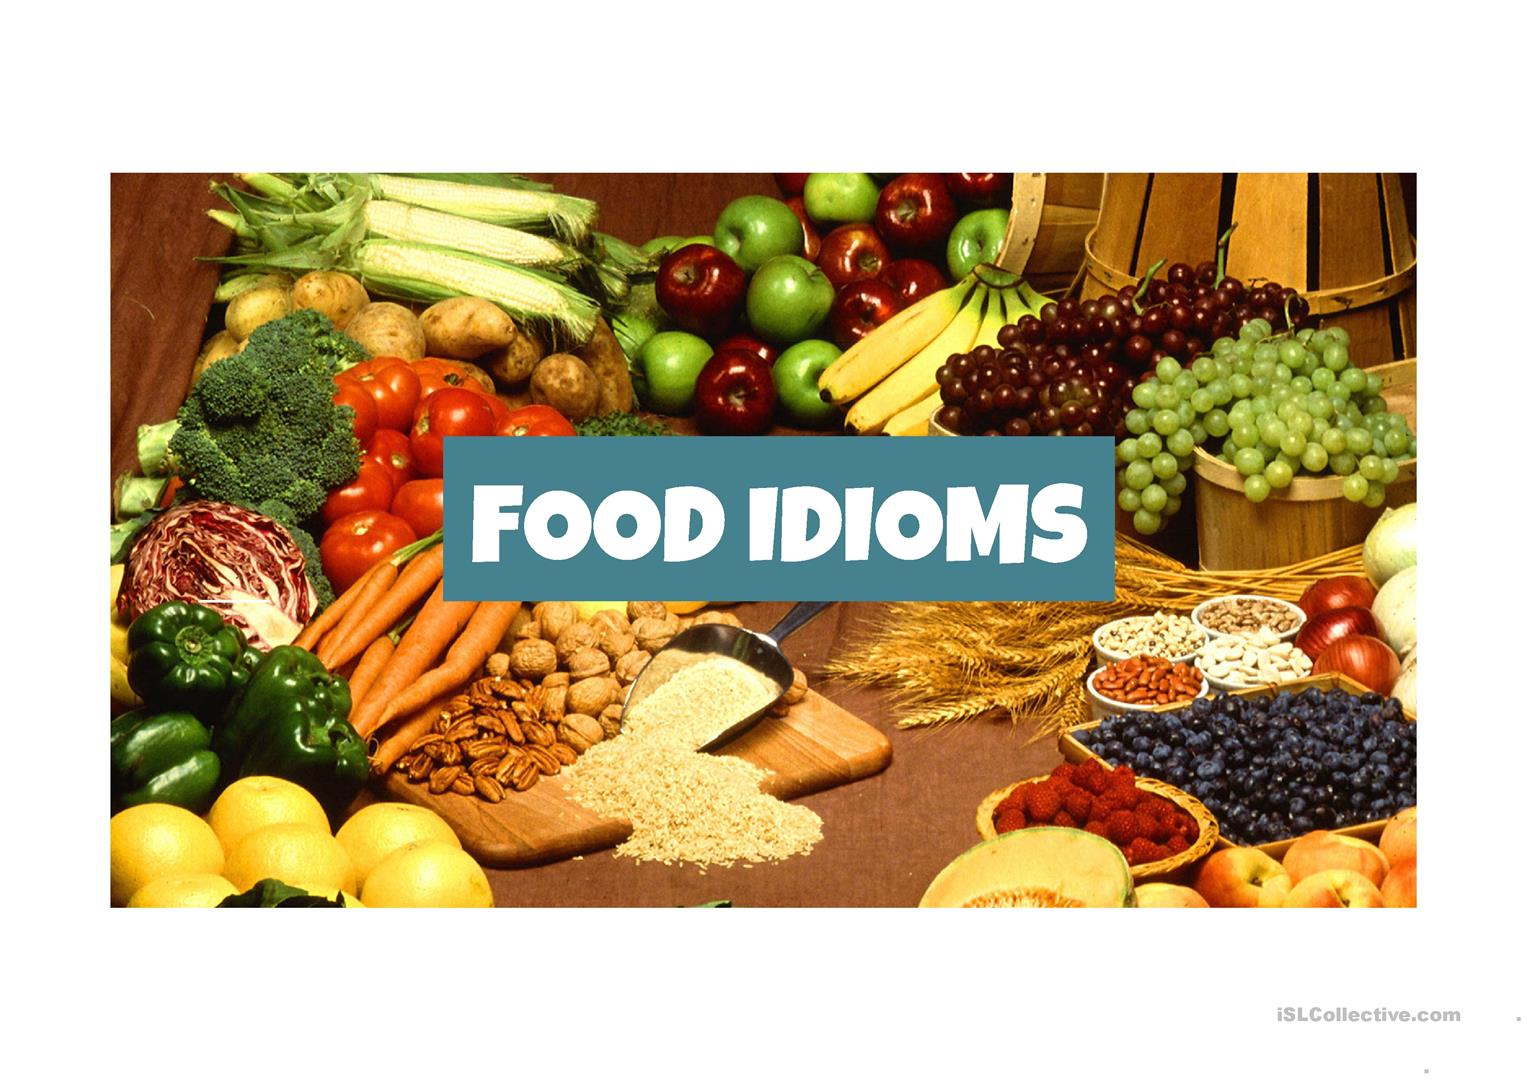 Food Idioms Ppts Worksheet